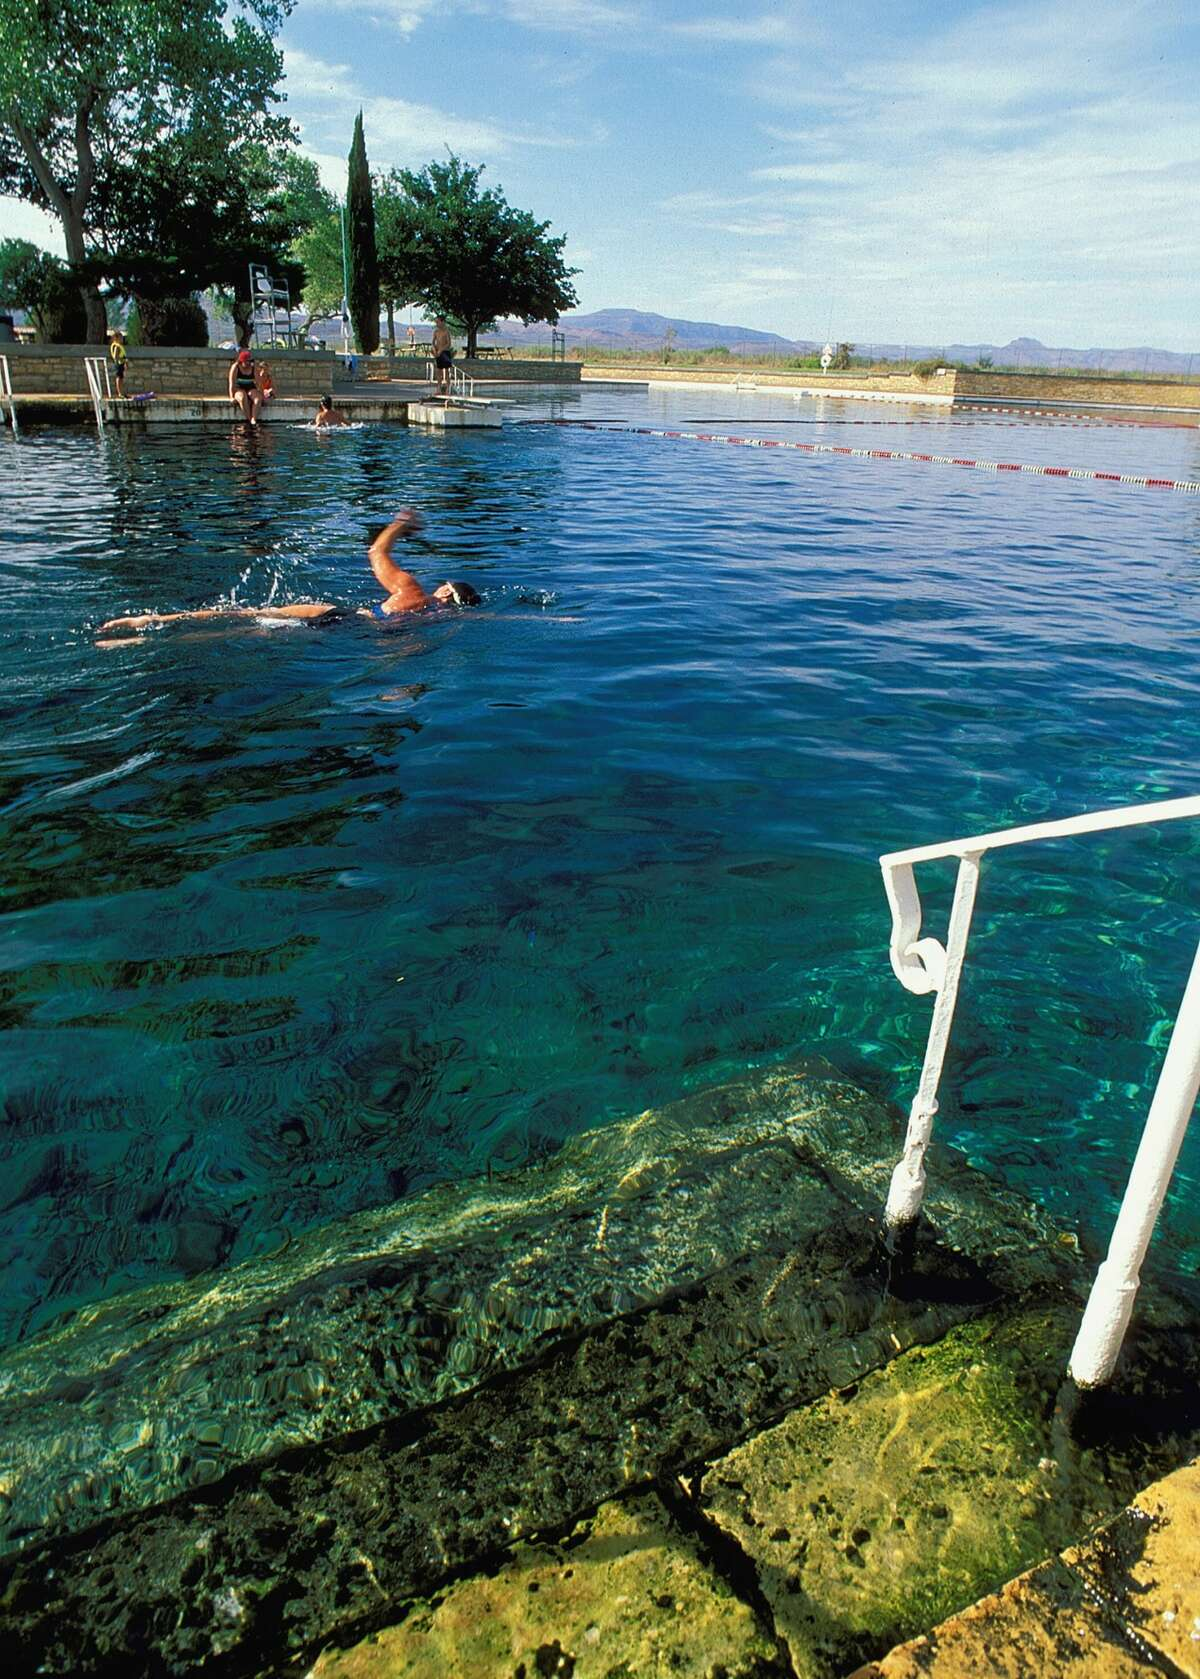 Balmorhea State Park has a spring-fed pool